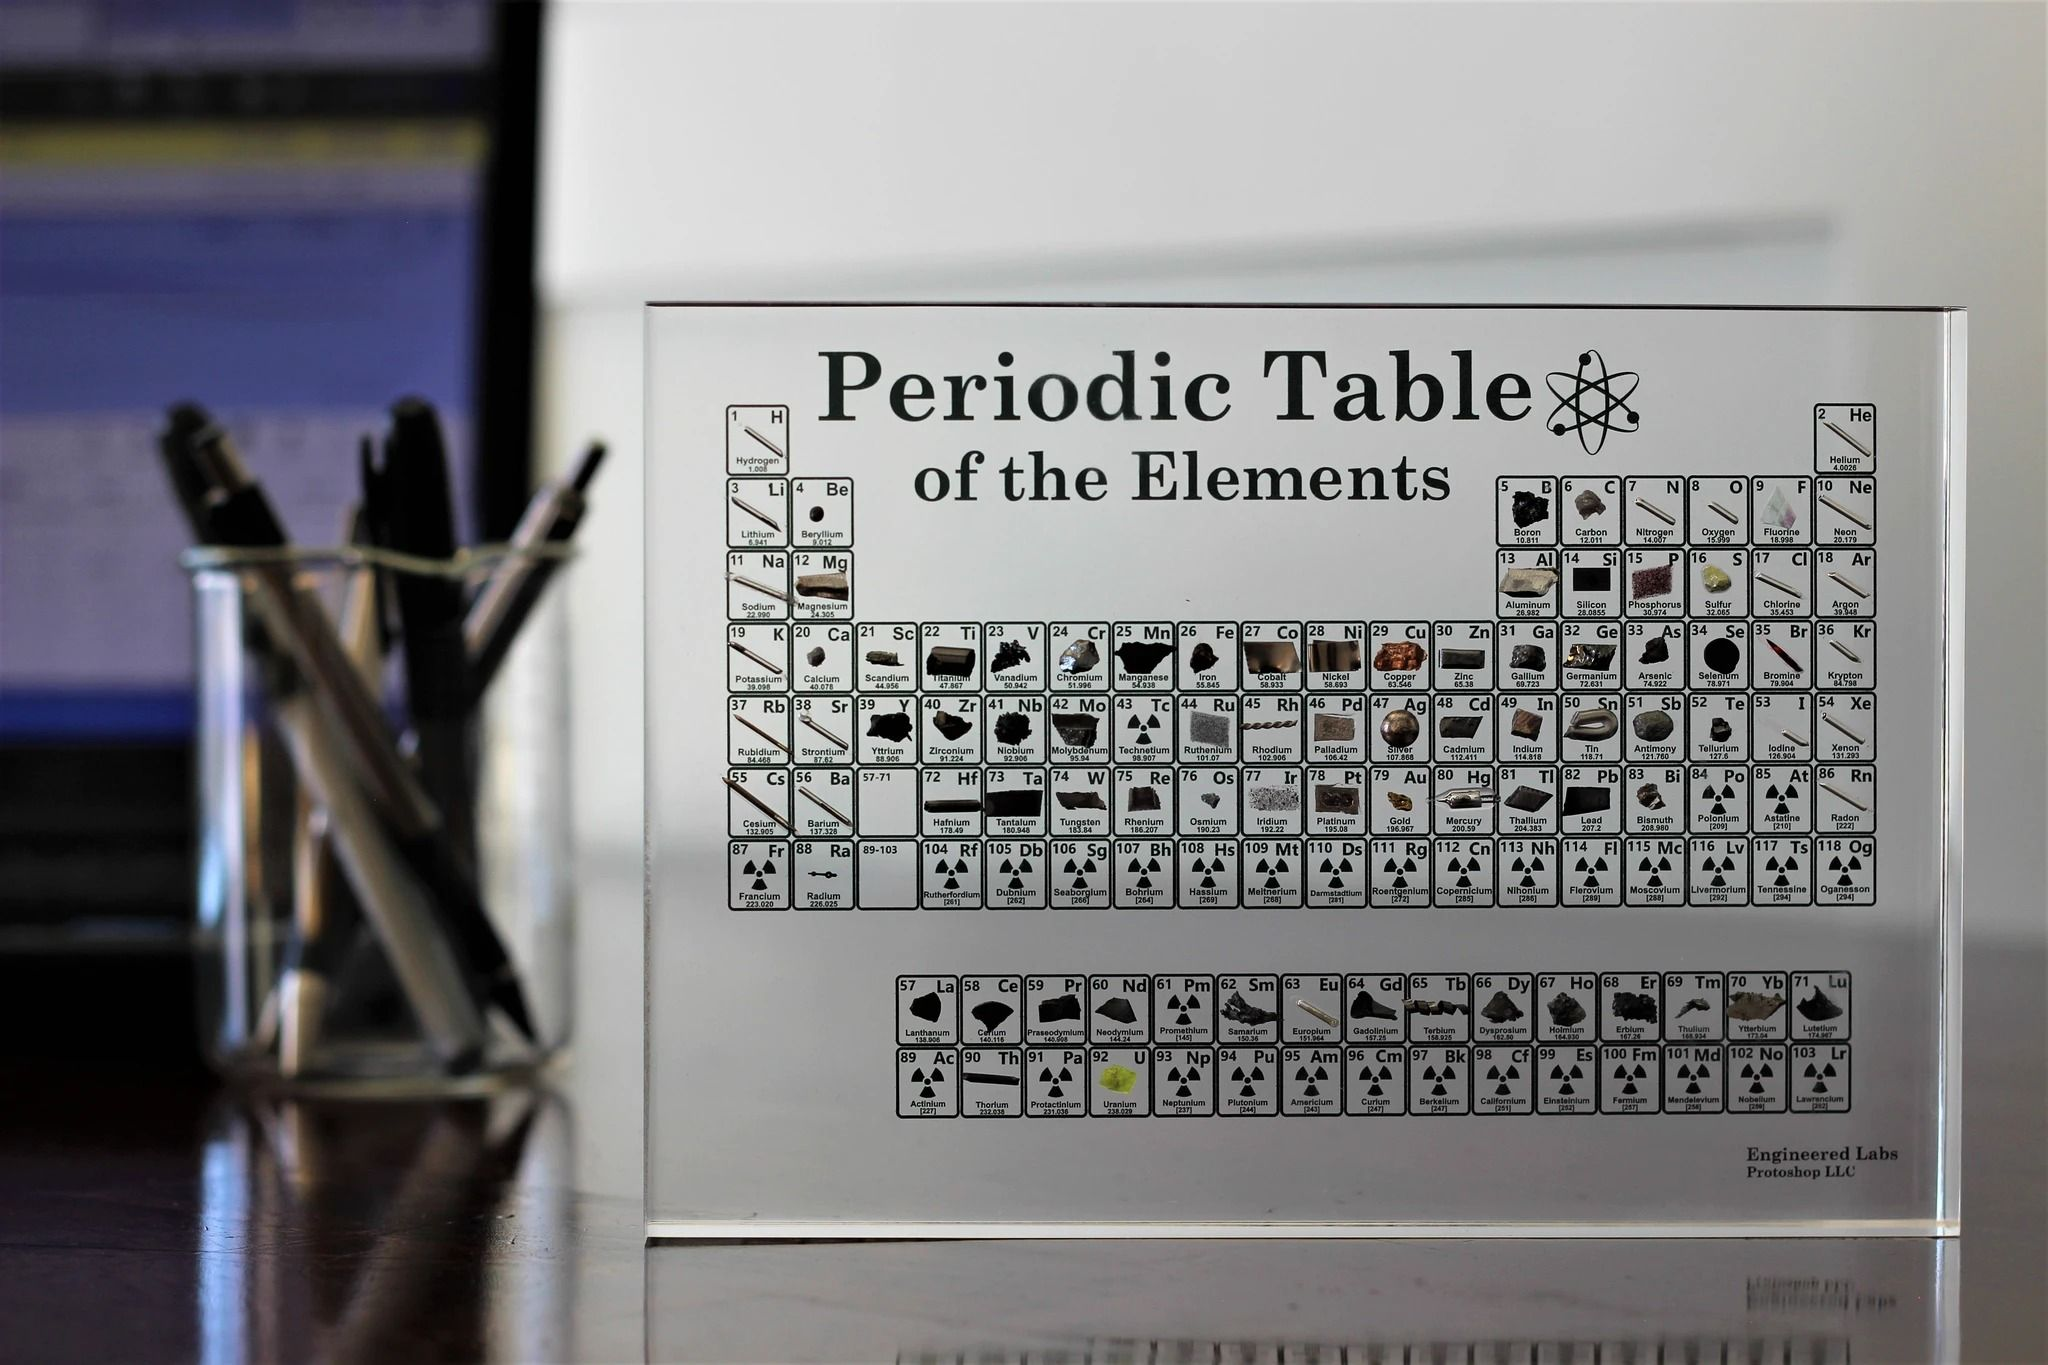 Https Img Xshoppy Shop Uploader A9c8190aefb2a84c06339ad48fec3258 Jpg Periodic Table Periodic Table Of The Elements Science Gifts Ultra hd 1080p periodic table hd image